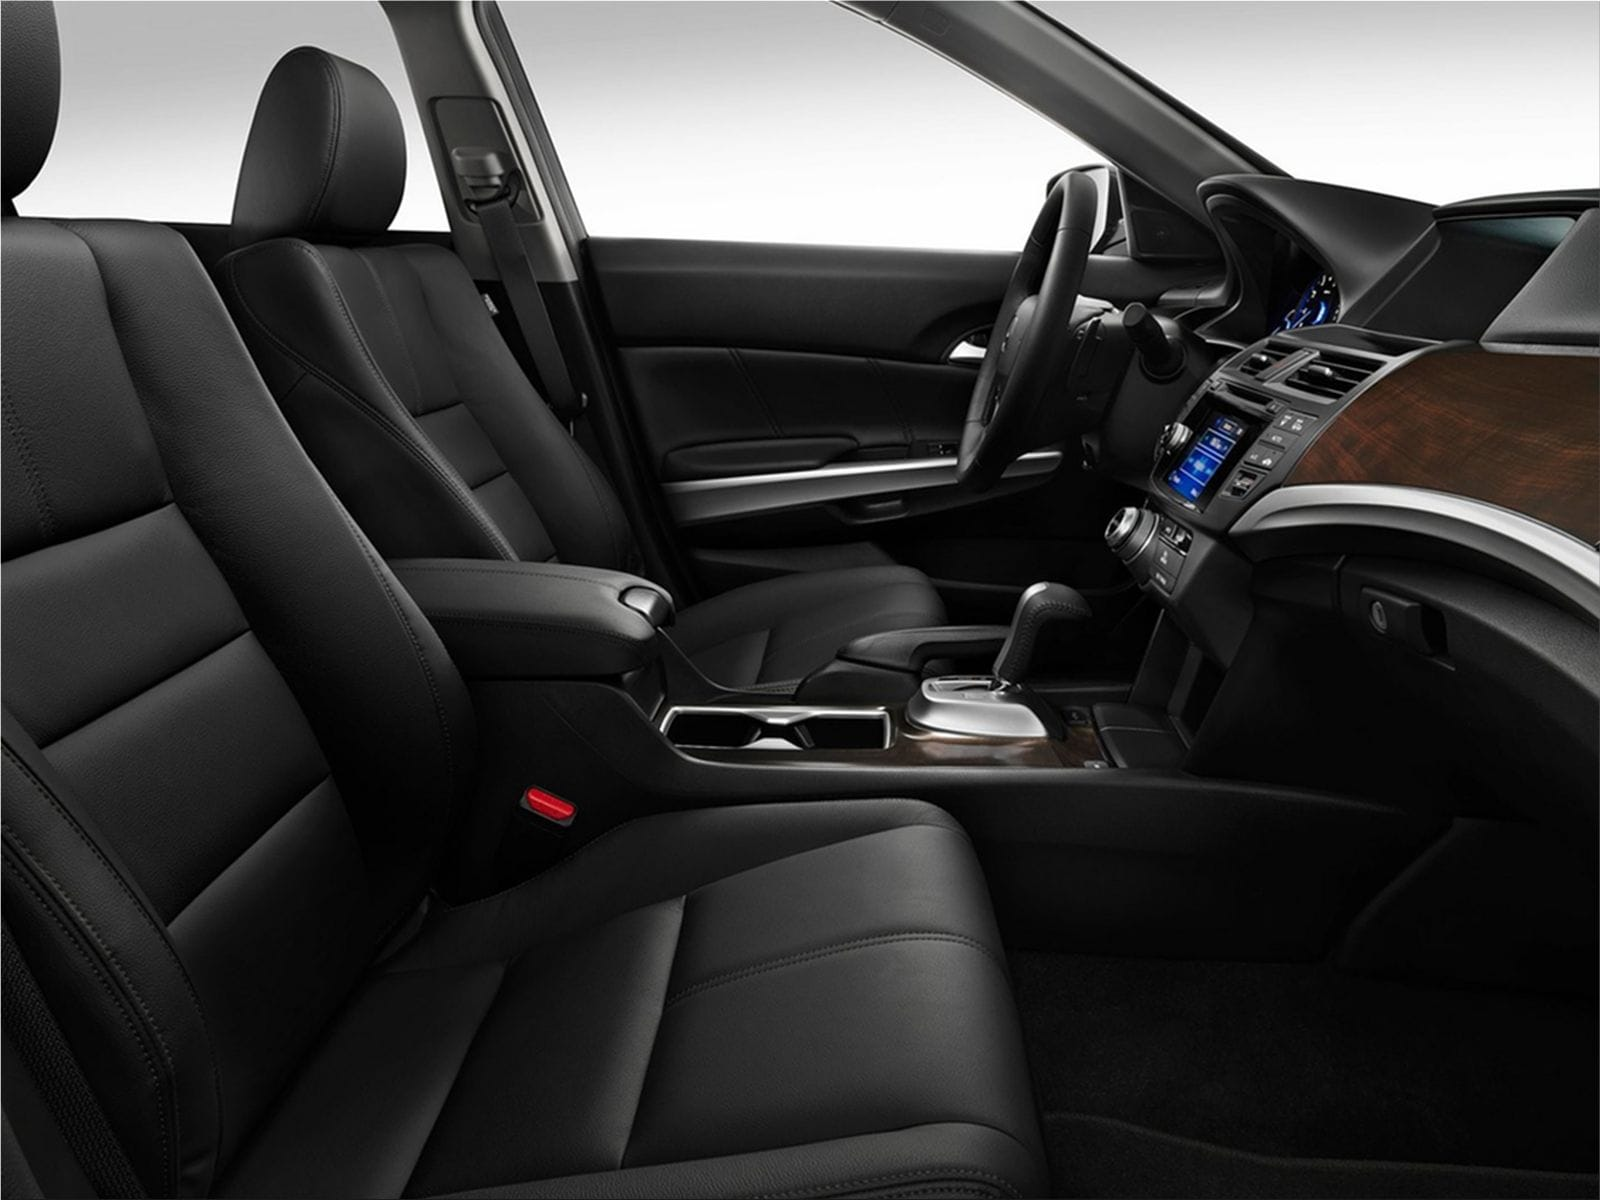 2013 honda crosstour with push button start honda car pictures. Black Bedroom Furniture Sets. Home Design Ideas